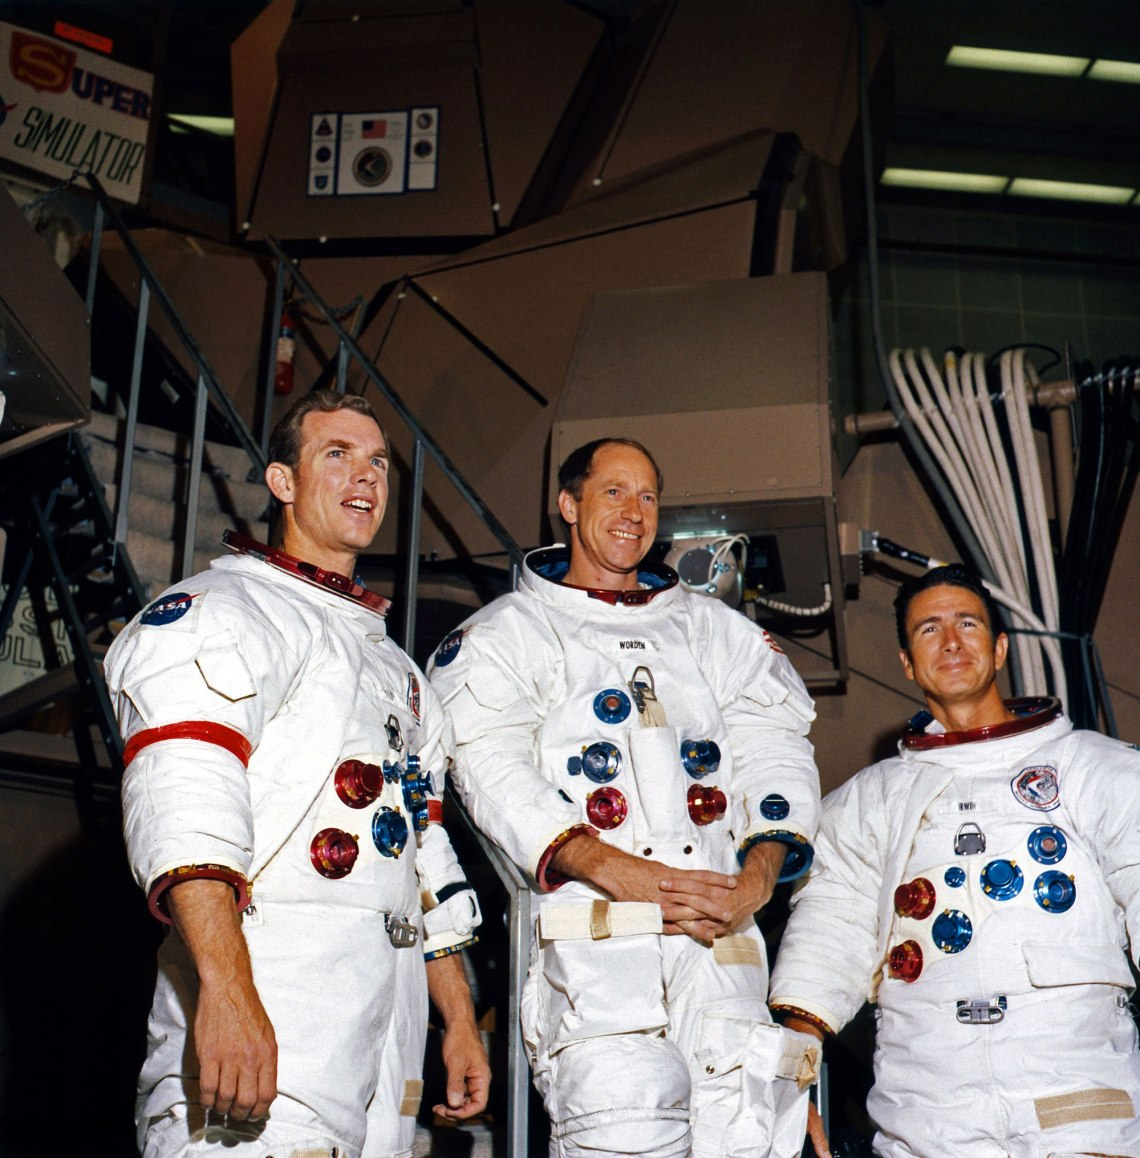 Apollo 15 crew Dave Scott, Al Worden and Jim Irwin. Credit: NASA via Retro Space Images